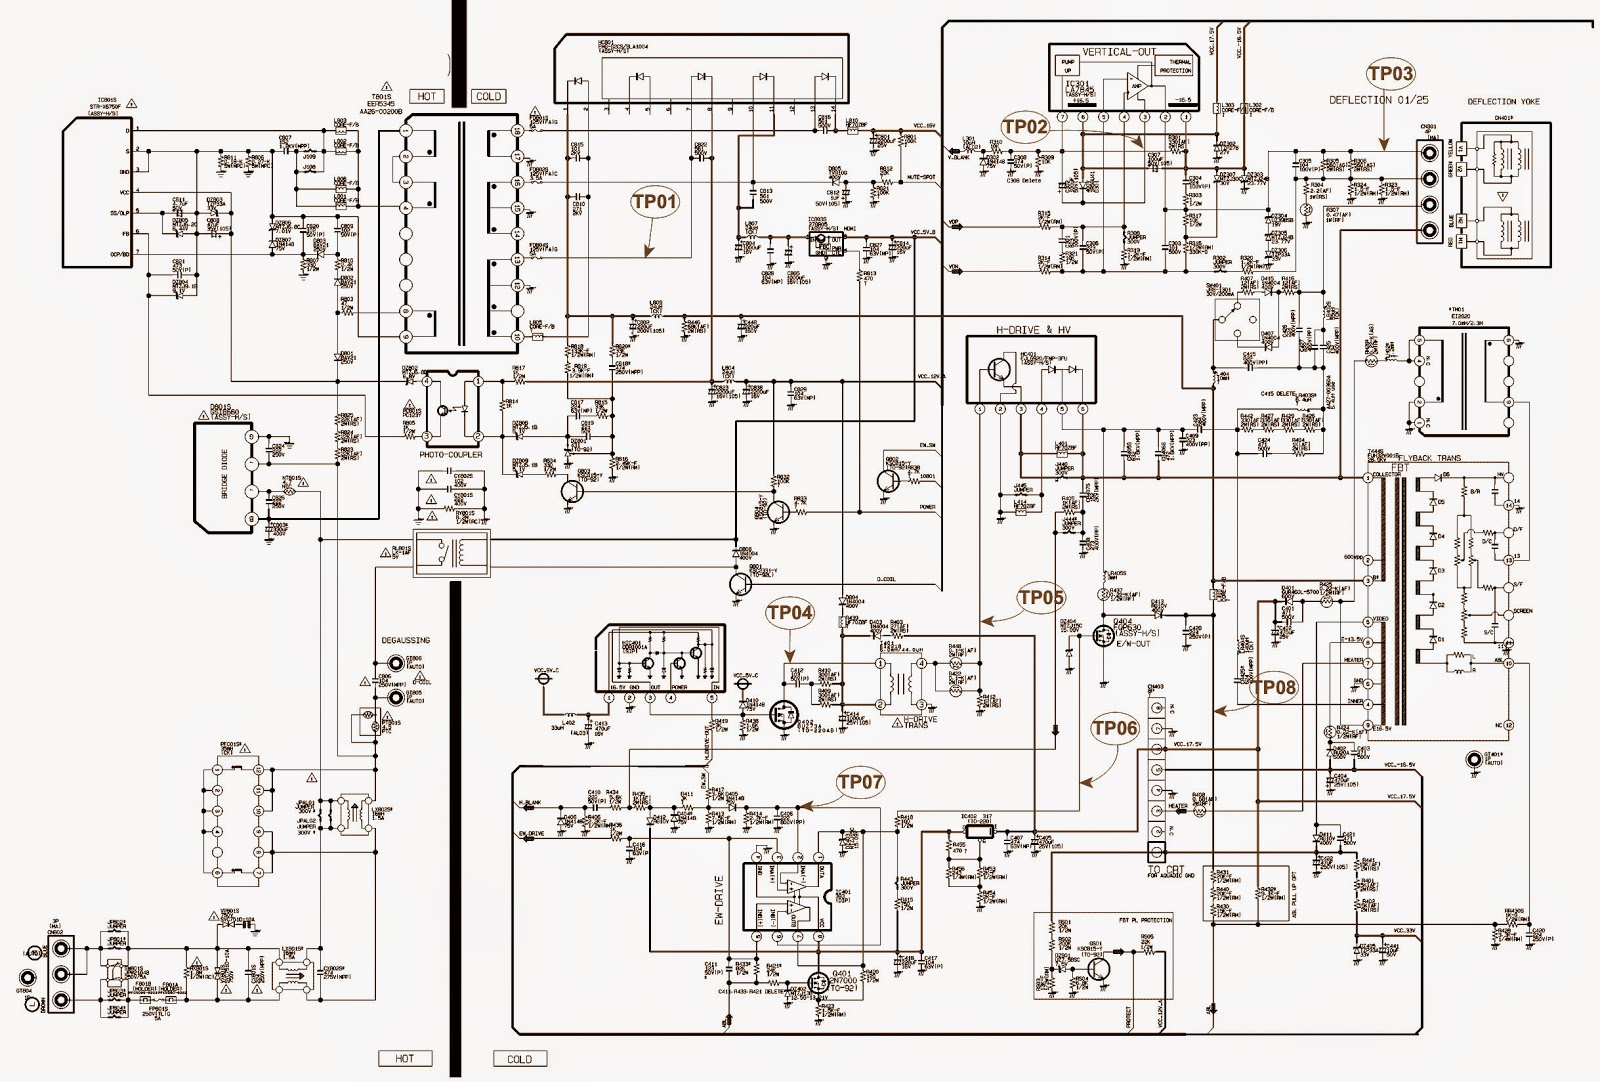 hight resolution of samsung tv wiring diagram wiring diagram origin led tv parts list samsung lcd tv schematic diagram